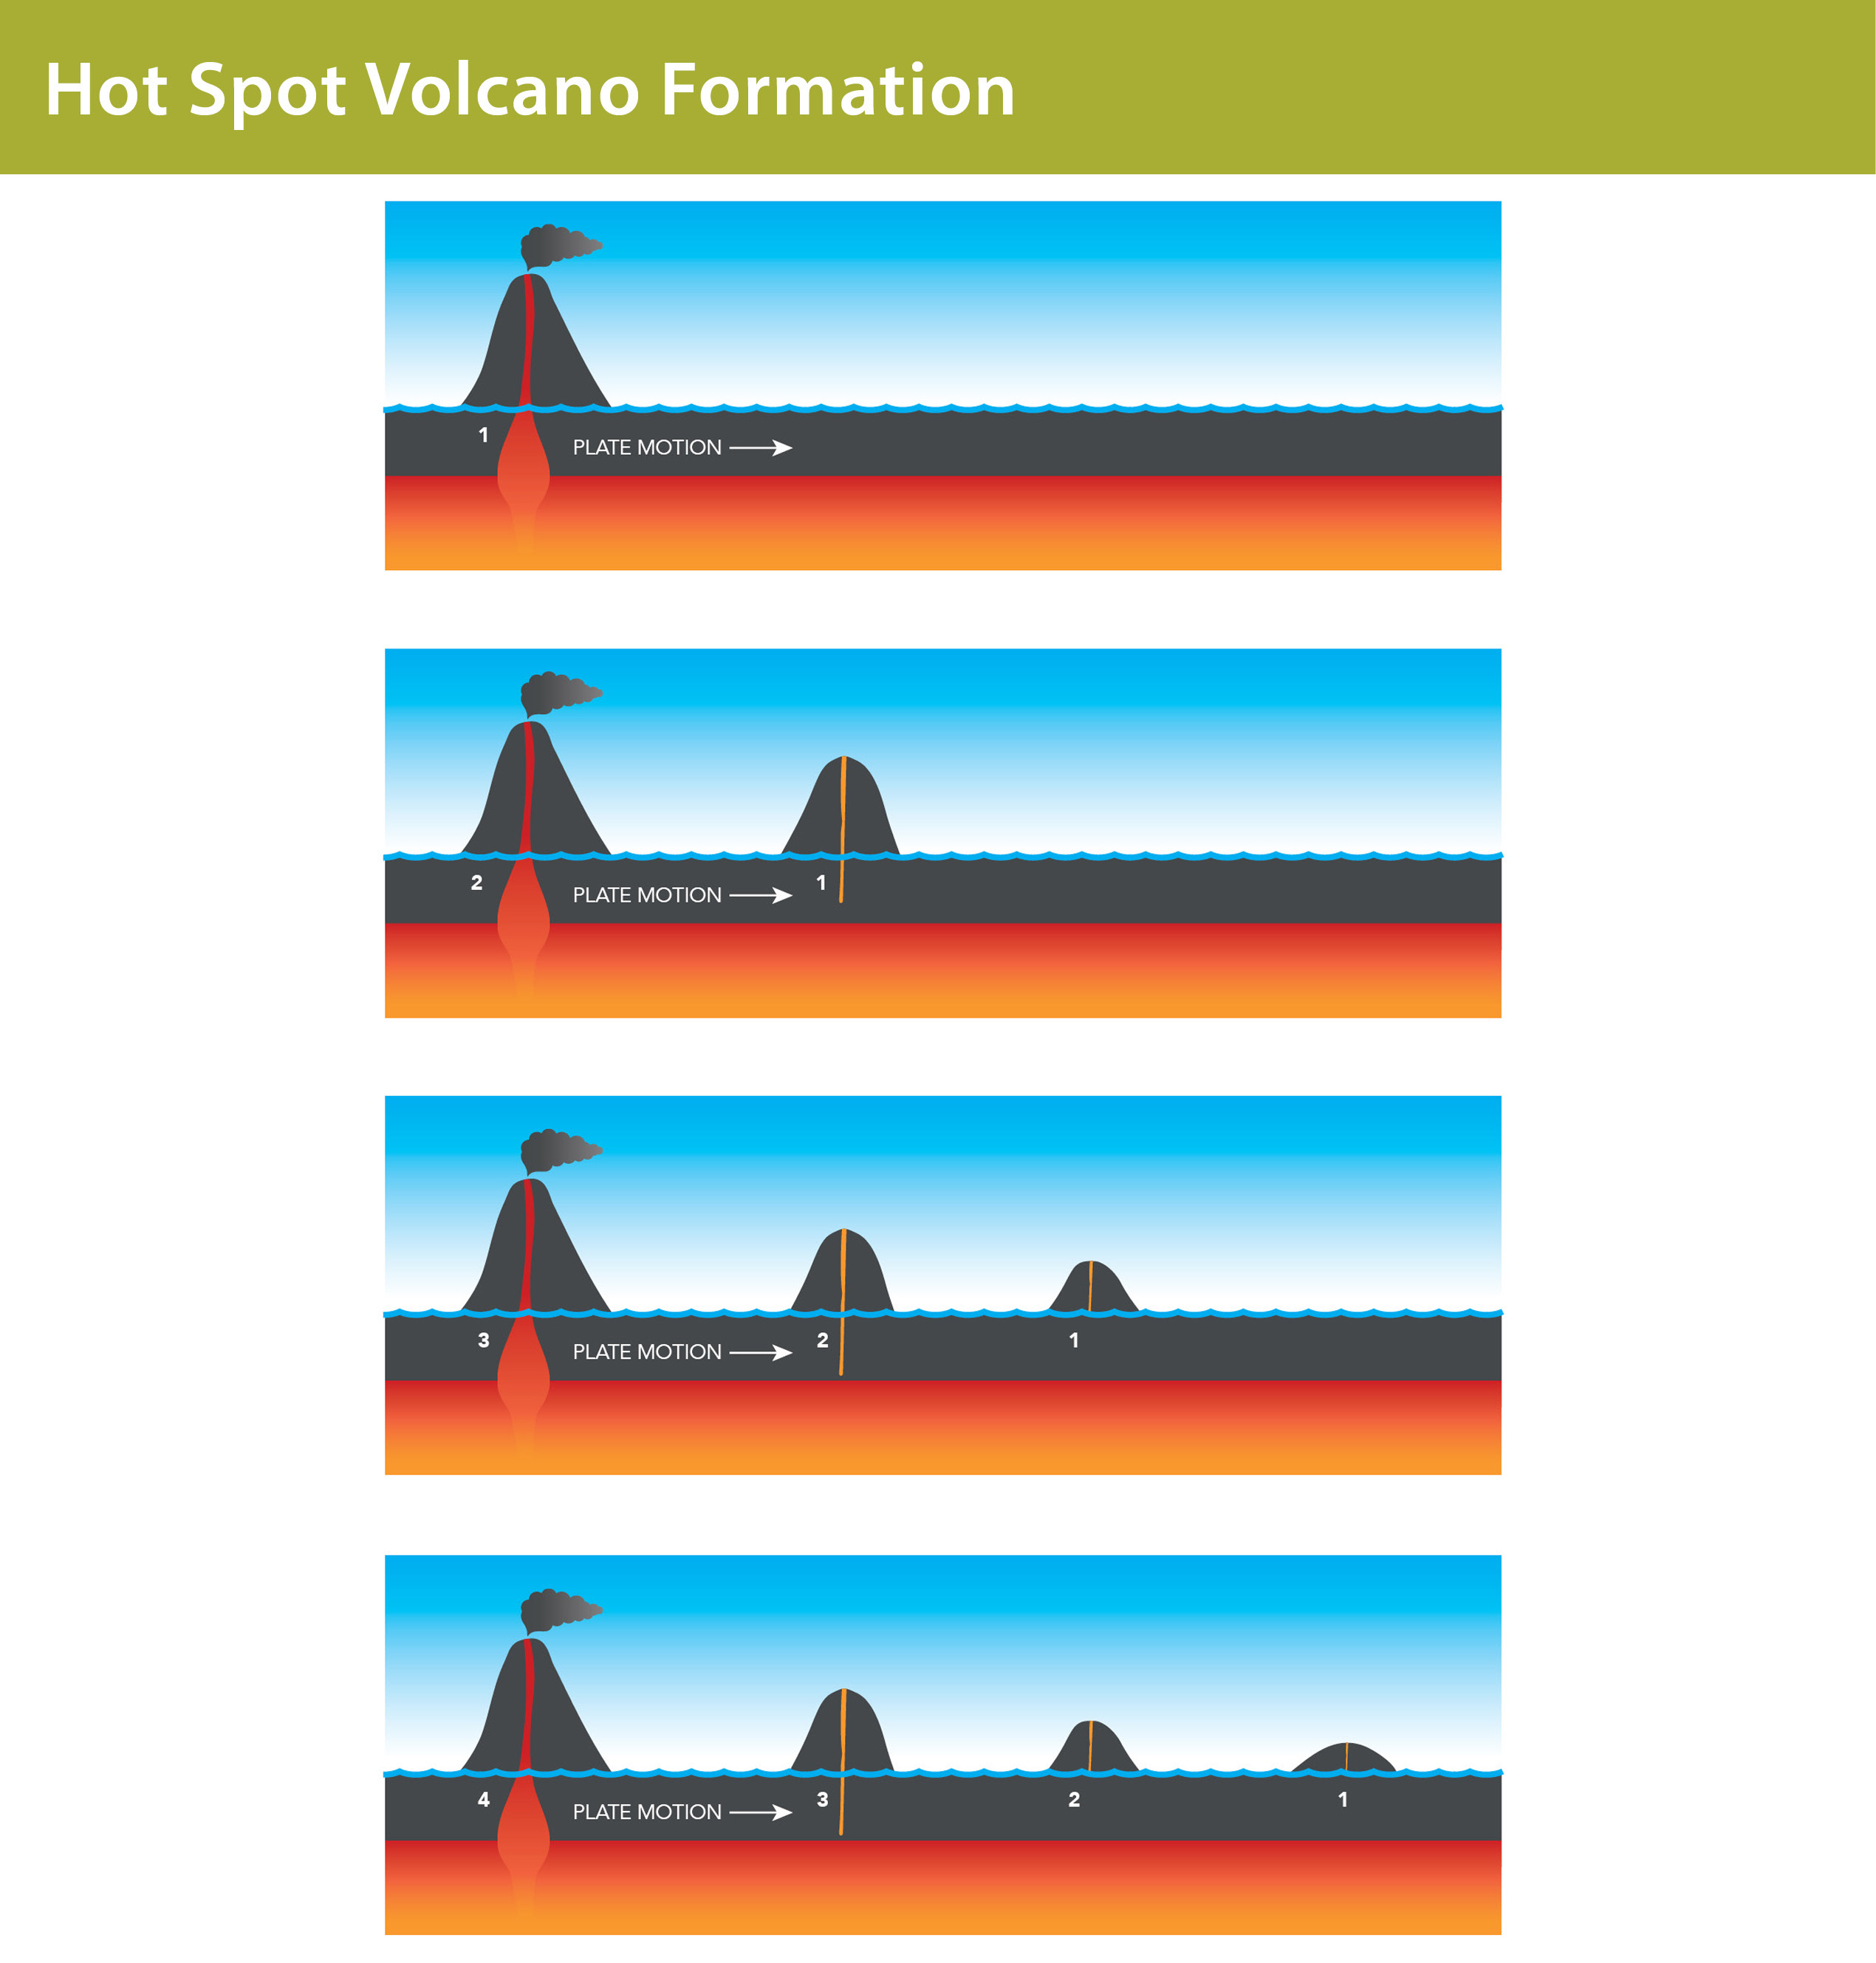 Galapagos Graphics: A diagram to show hot spot volcano formation © Lisa Brown